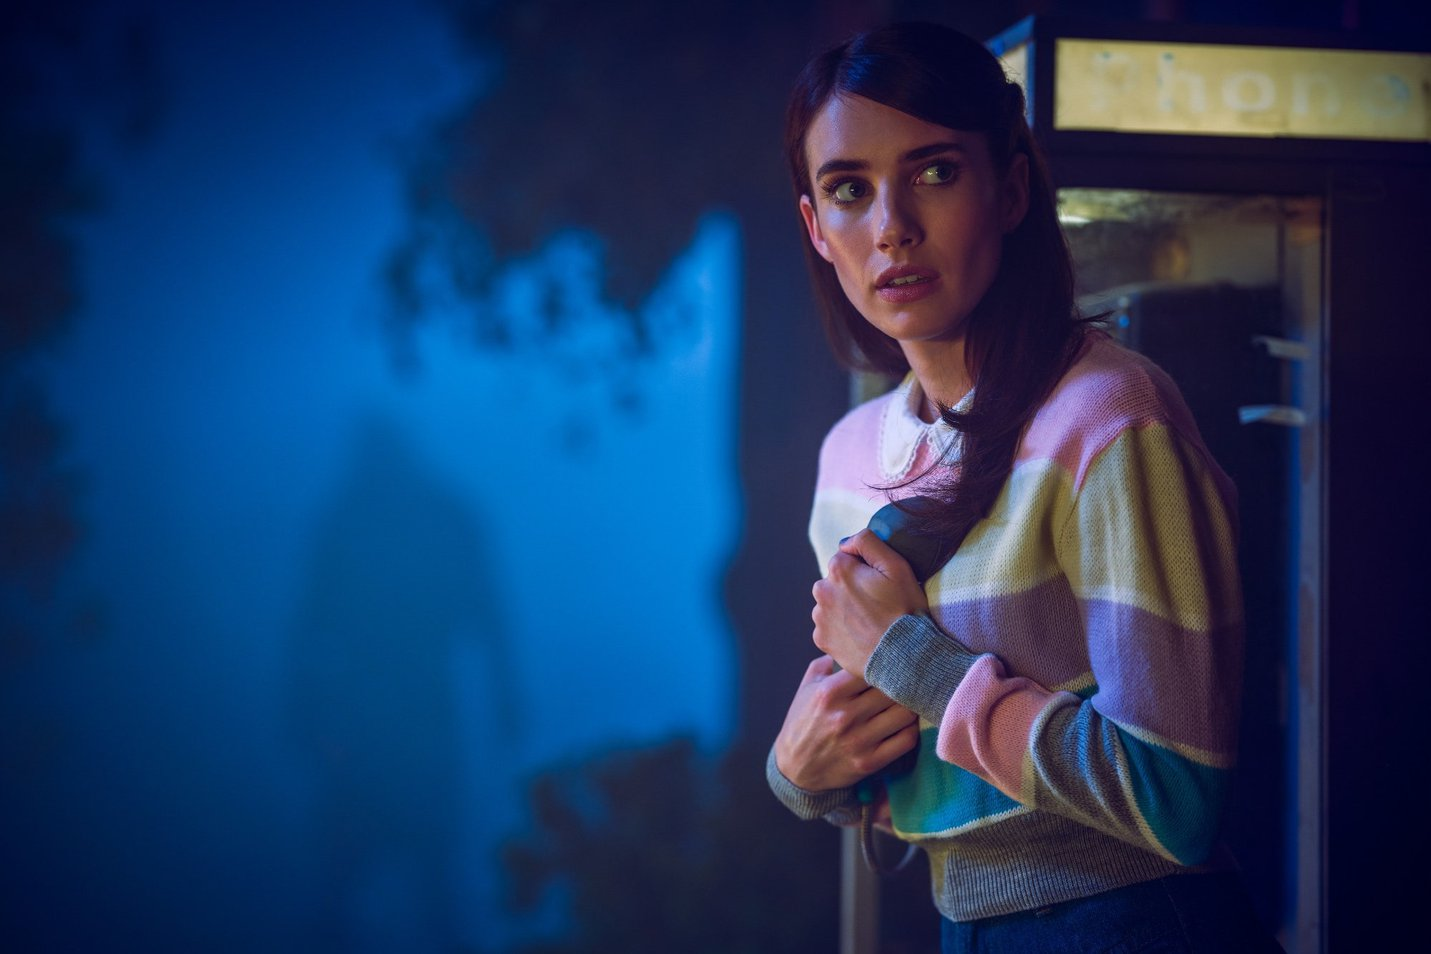 Emma Roberts as Madison Montgomery in a still from 'American Horror Story - 1984'